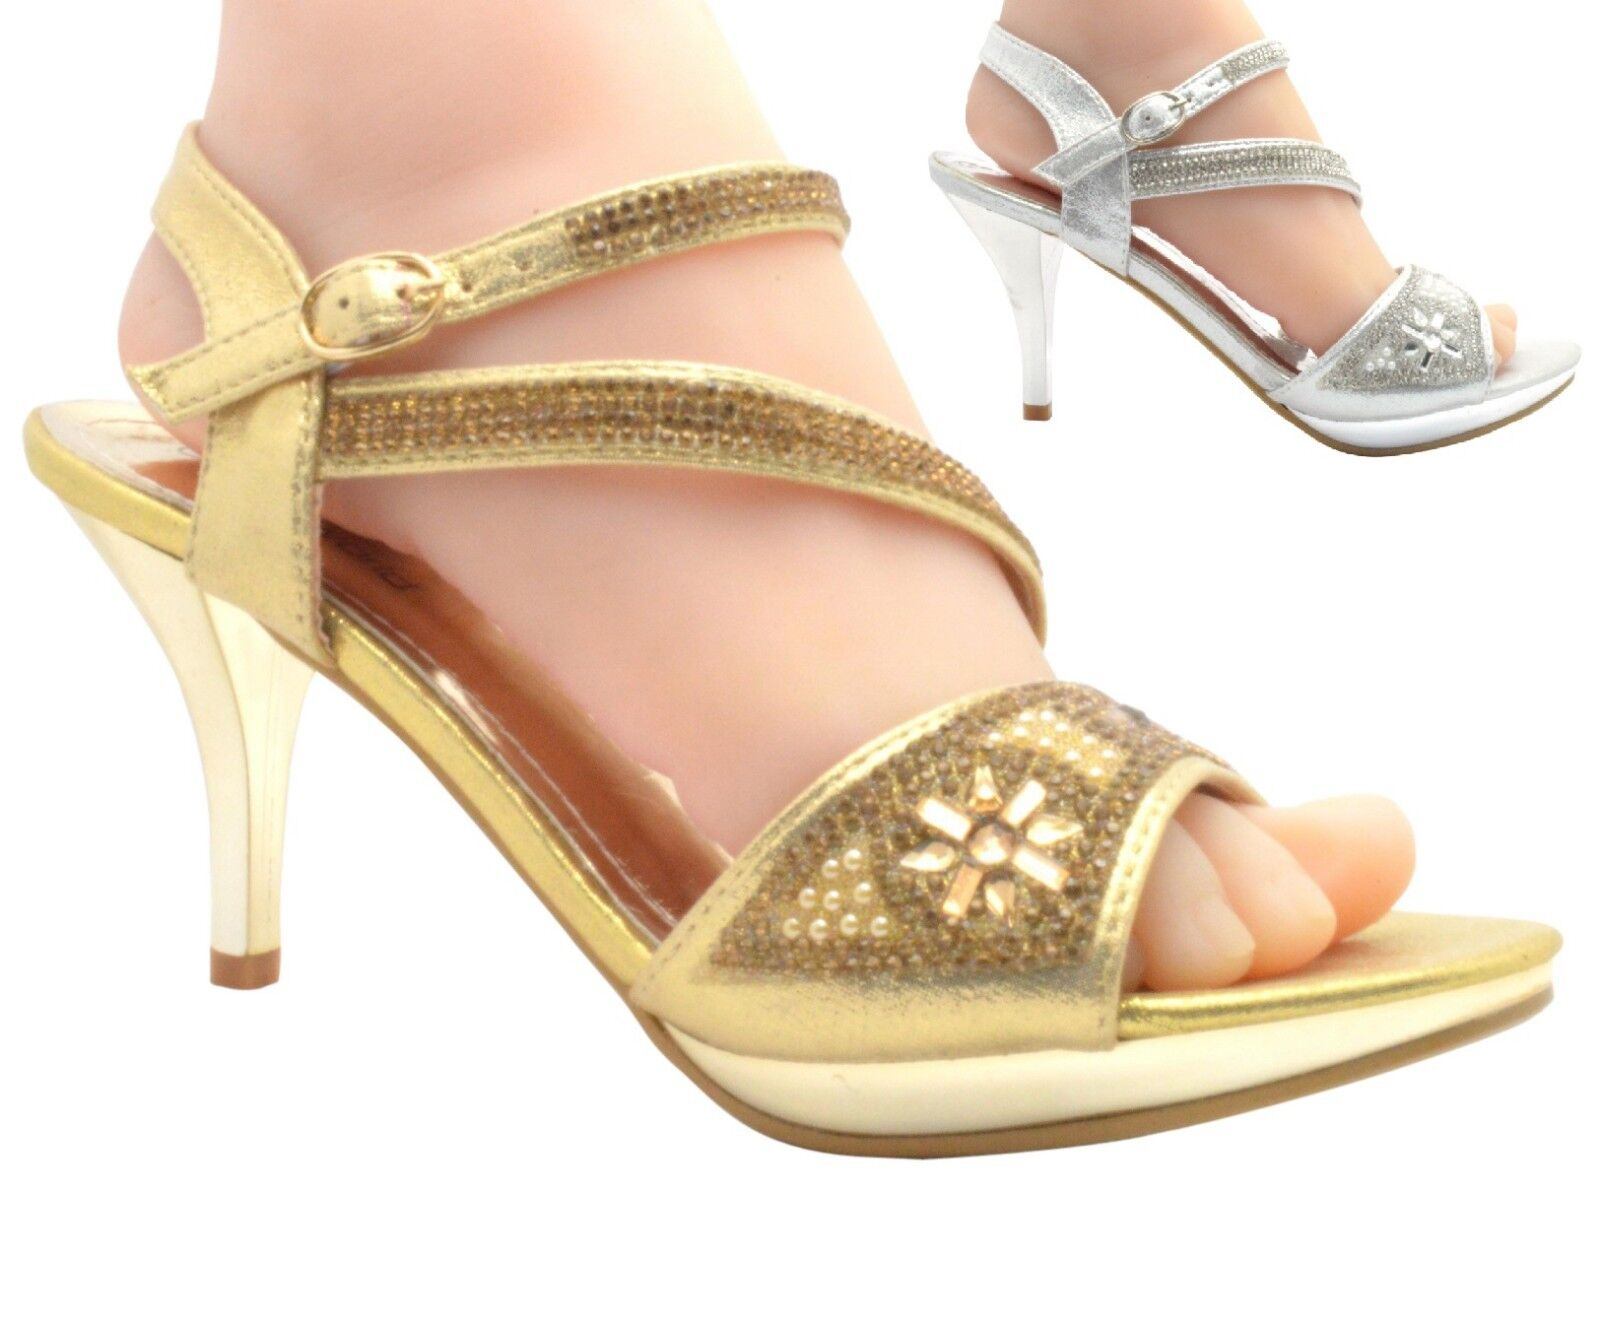 WOMENS LADIES SHOES DIAMANTE HIGH HEEL PROM SHOES LADIES WEDDING BRIDAL EVENING SANDALS 20-10 142a12